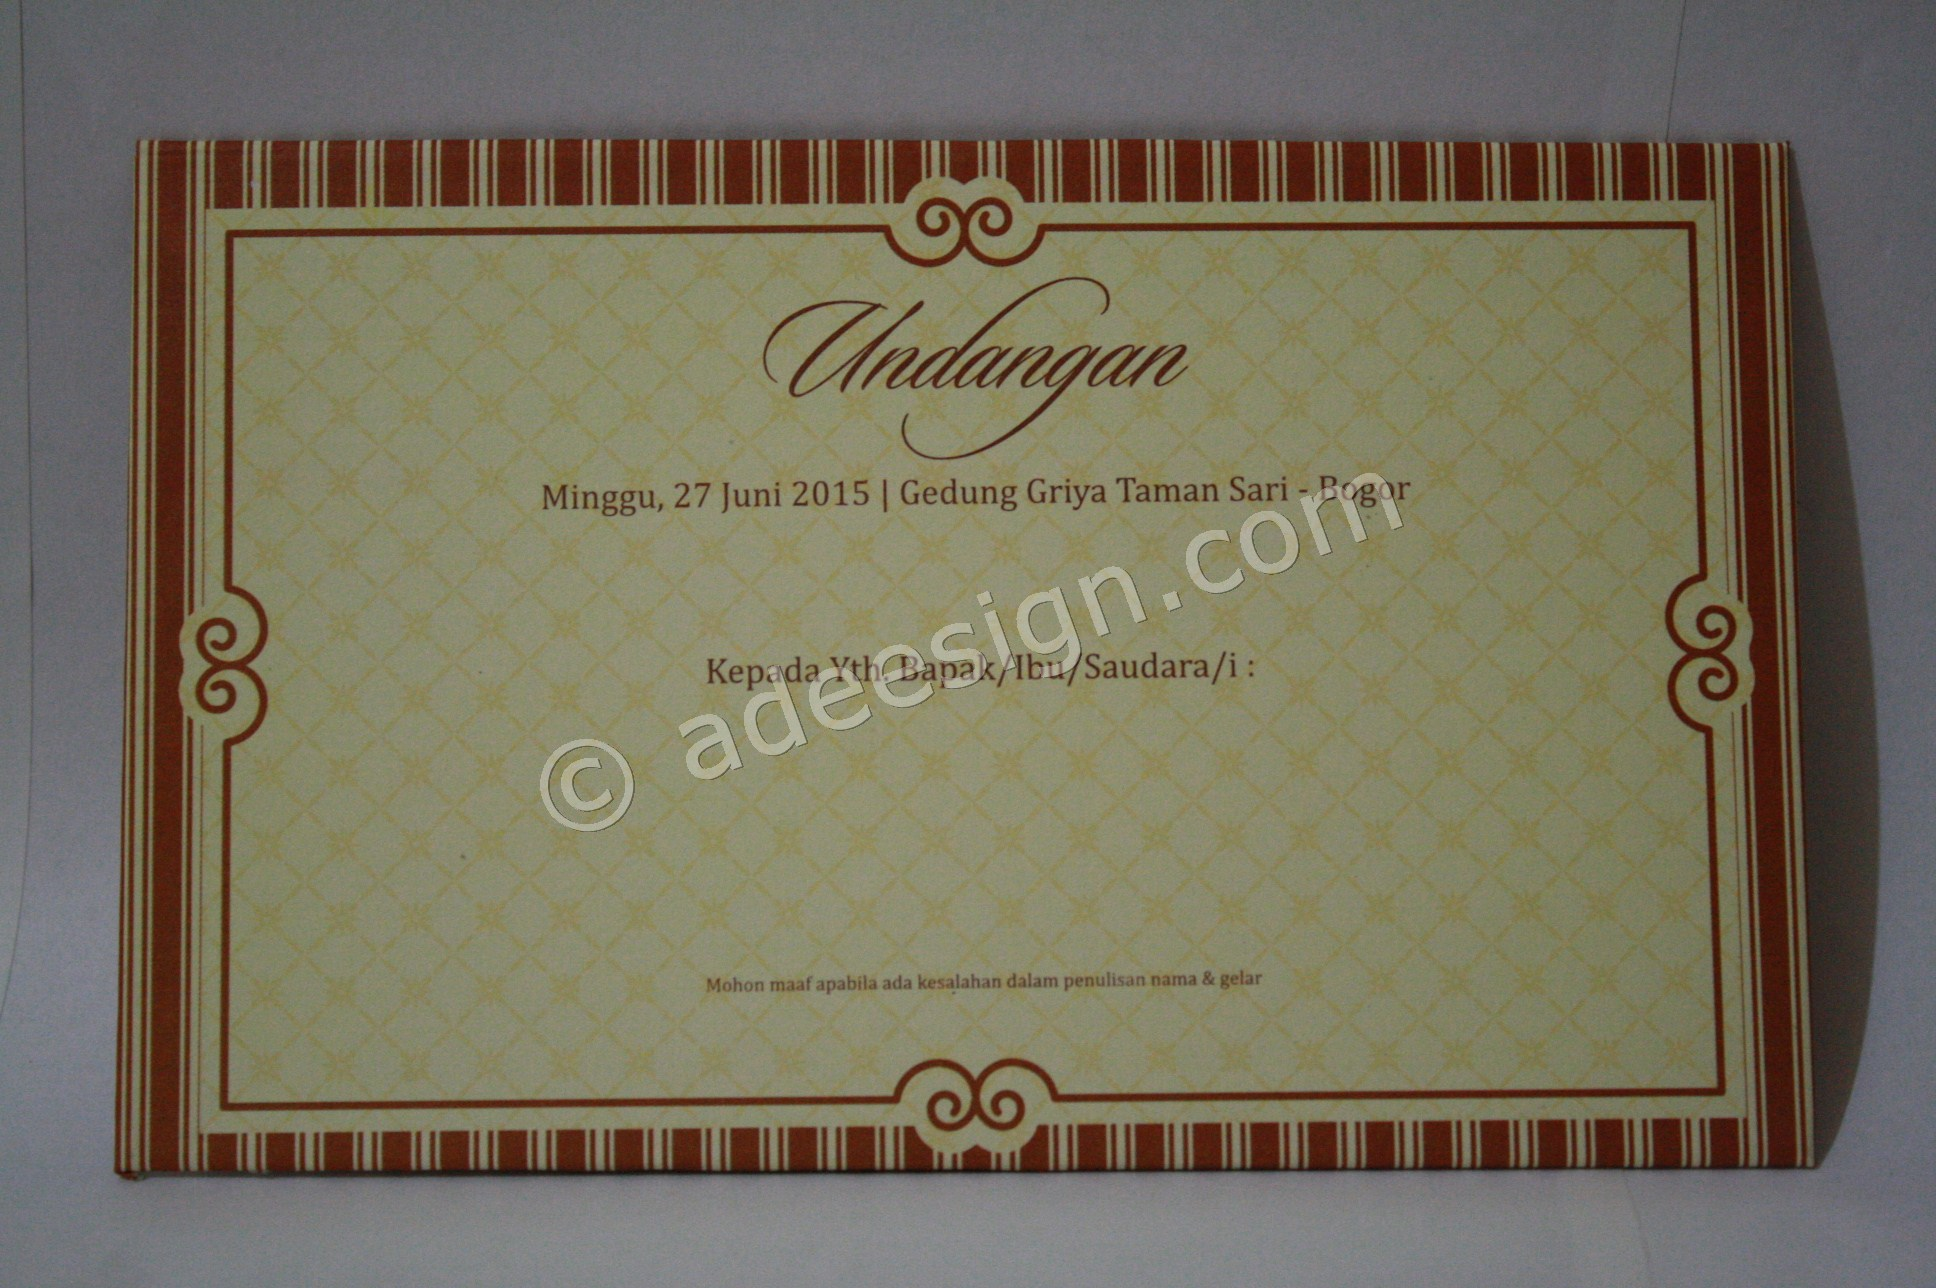 Undangan Pernikahan Semi Hard Cover Nurul dan Imam 1 - Pesan Wedding Invitations Simple di Ploso